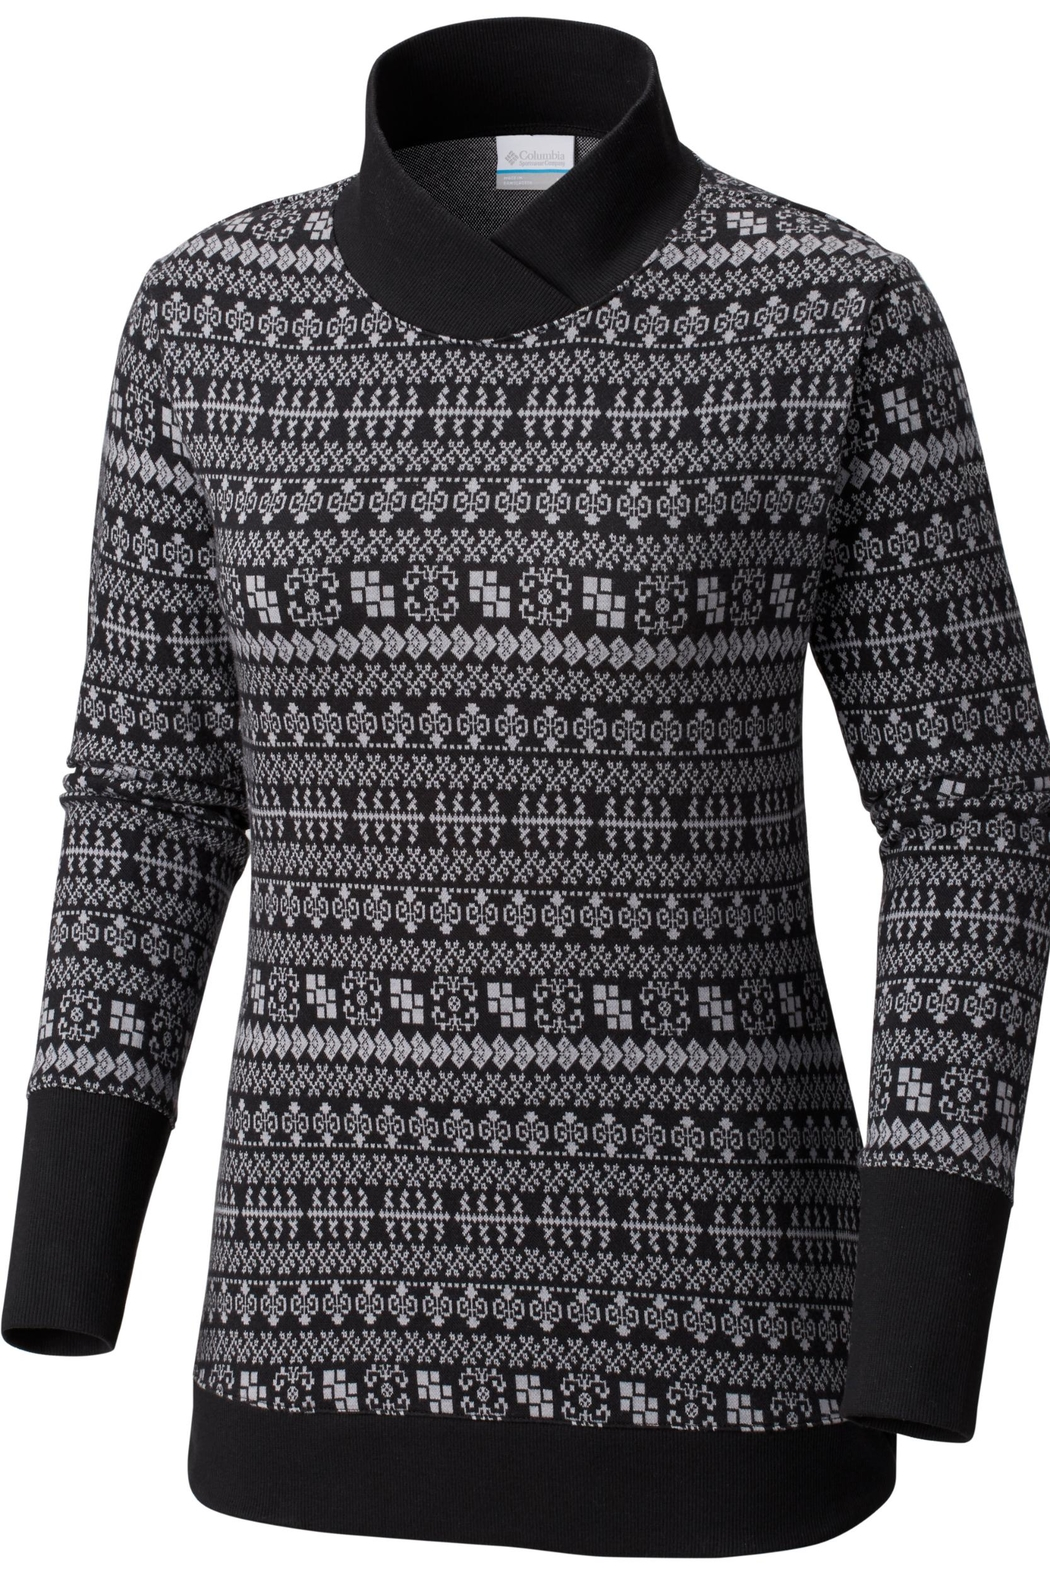 Columbia Sportswear Holly-Peak Jacquard Sweater - Front Cropped Image